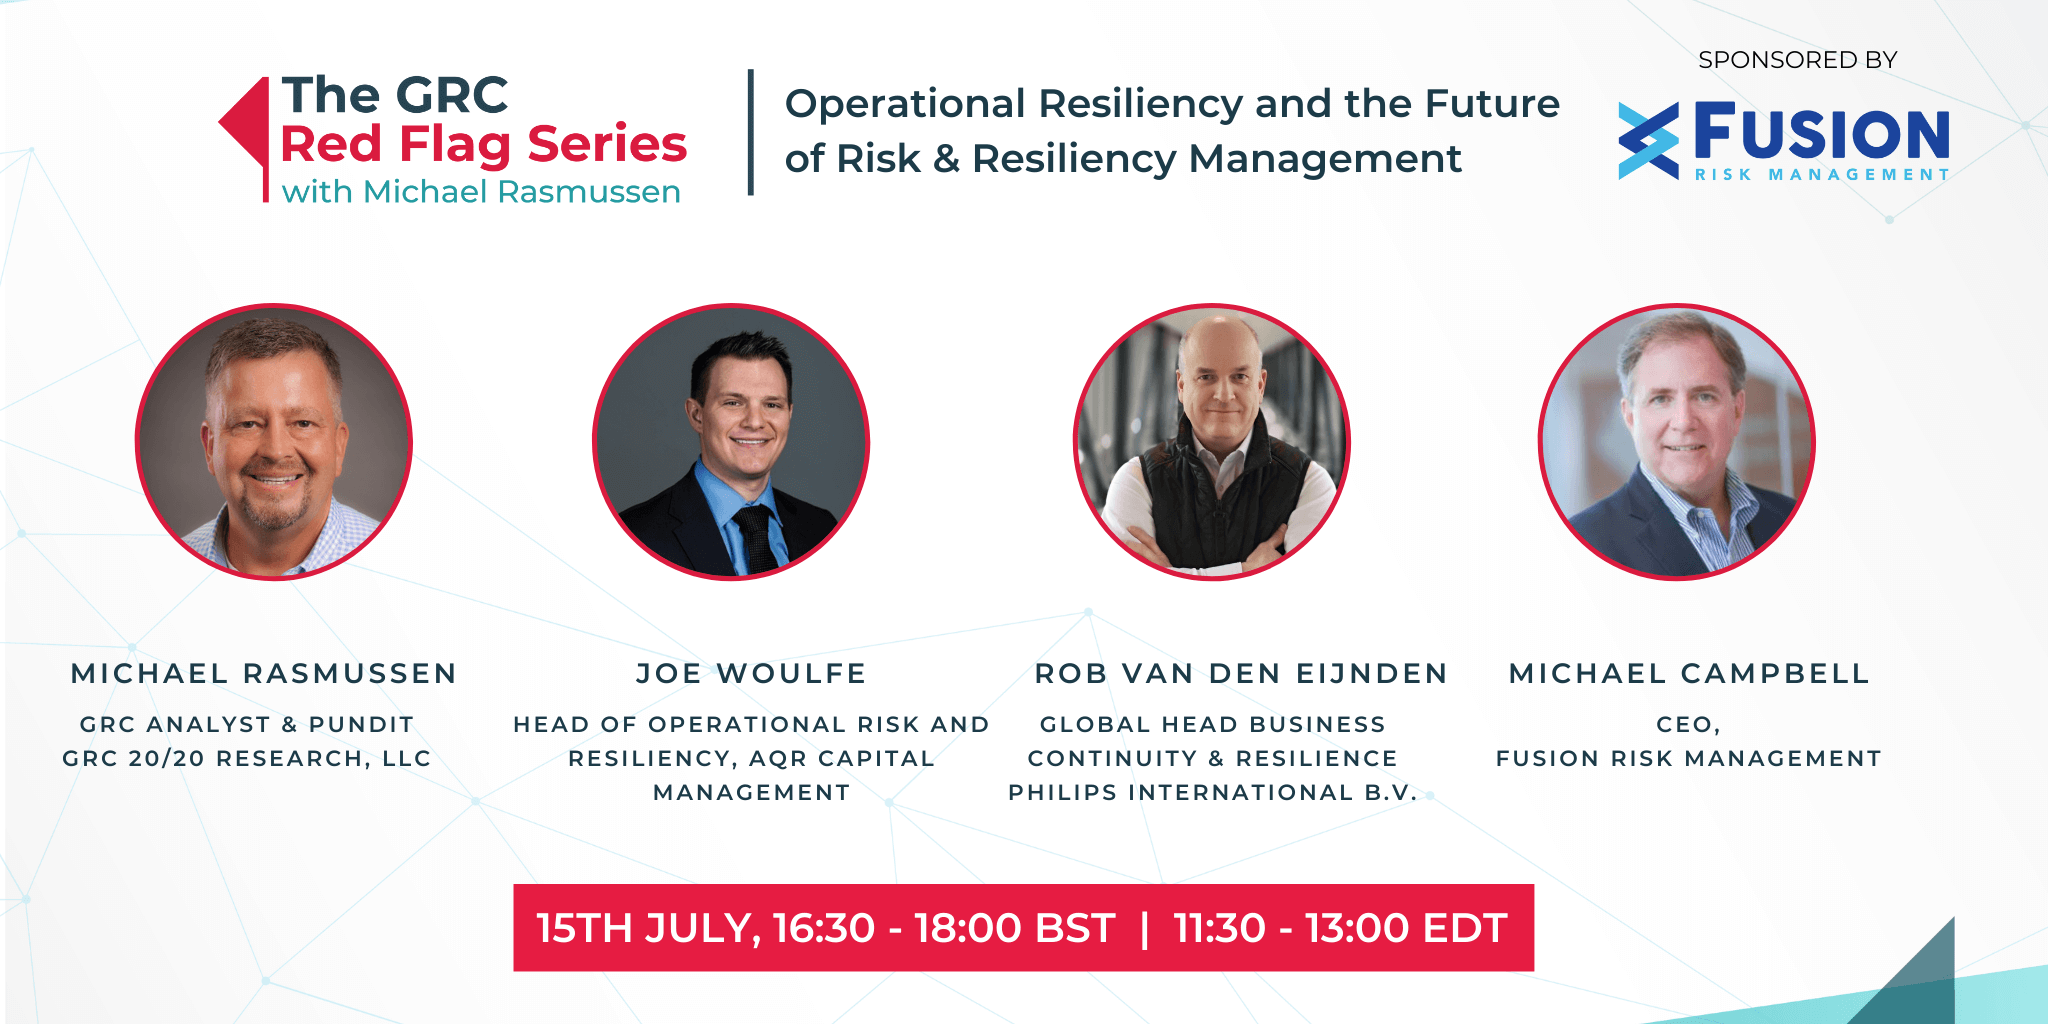 Operational Resiliency and the Future of Risk & Resiliency Management Image